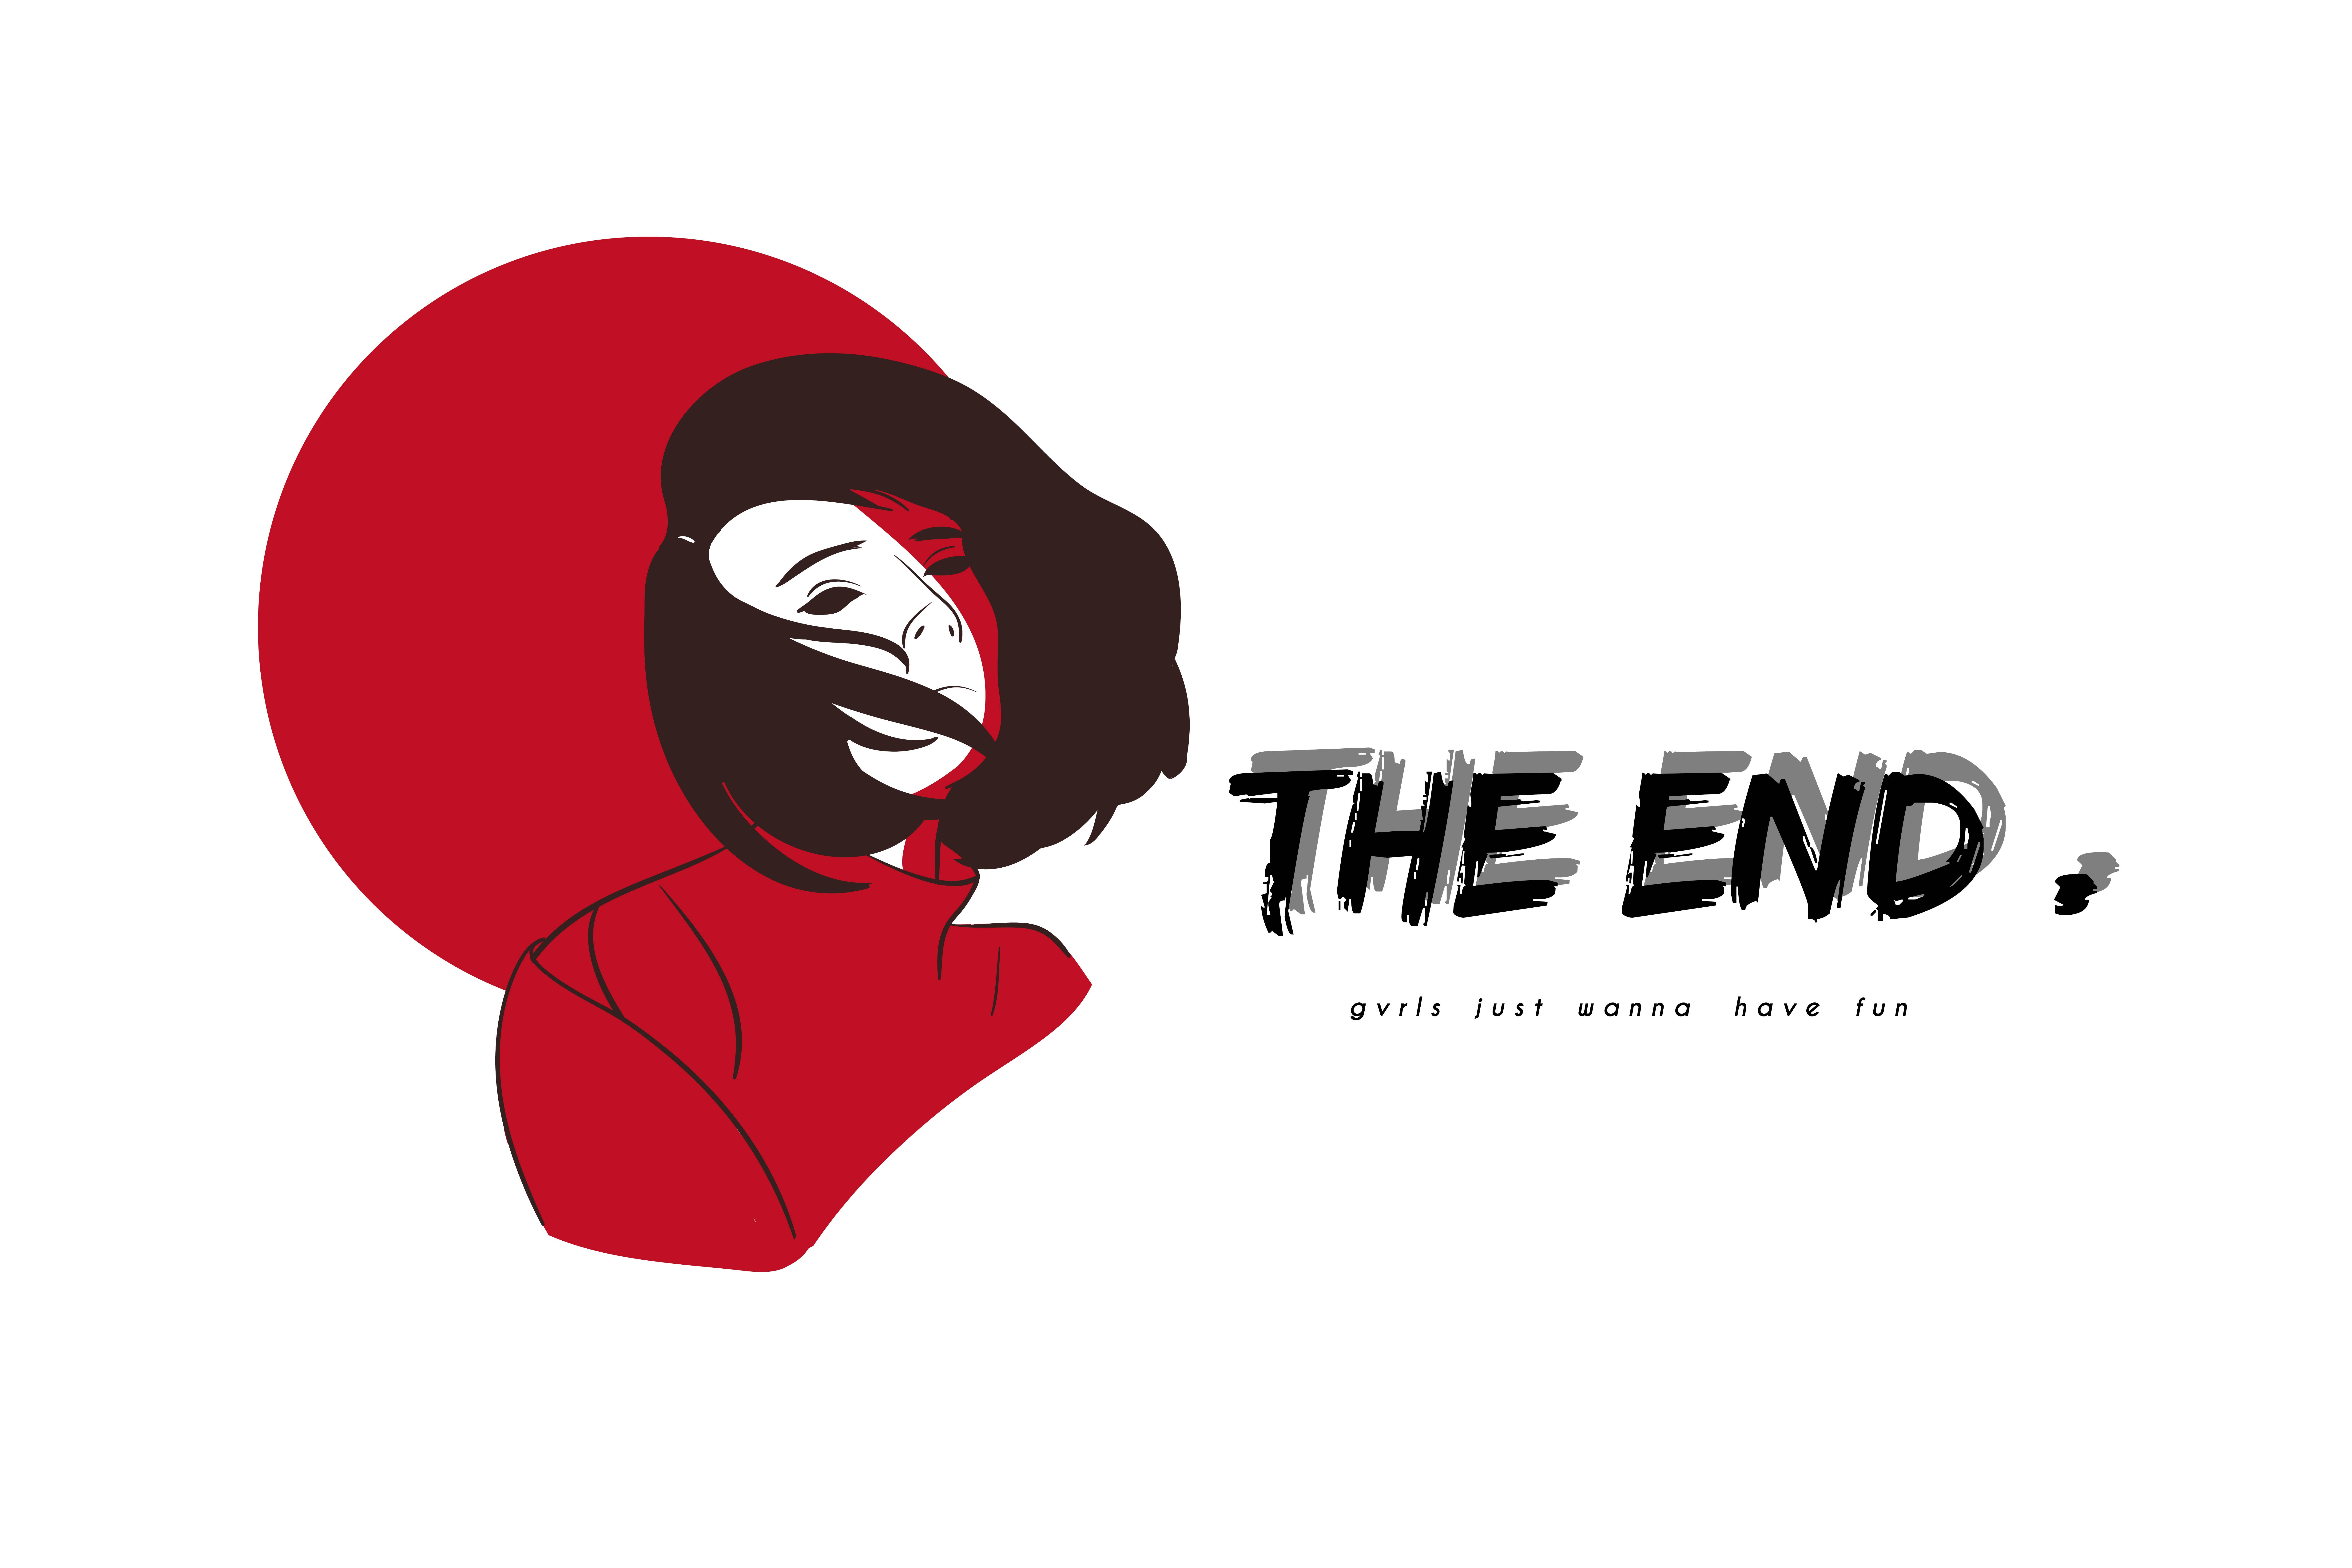 Download Free Occult Girls Red The End Graphic By Belangbiru Creative Fabrica for Cricut Explore, Silhouette and other cutting machines.